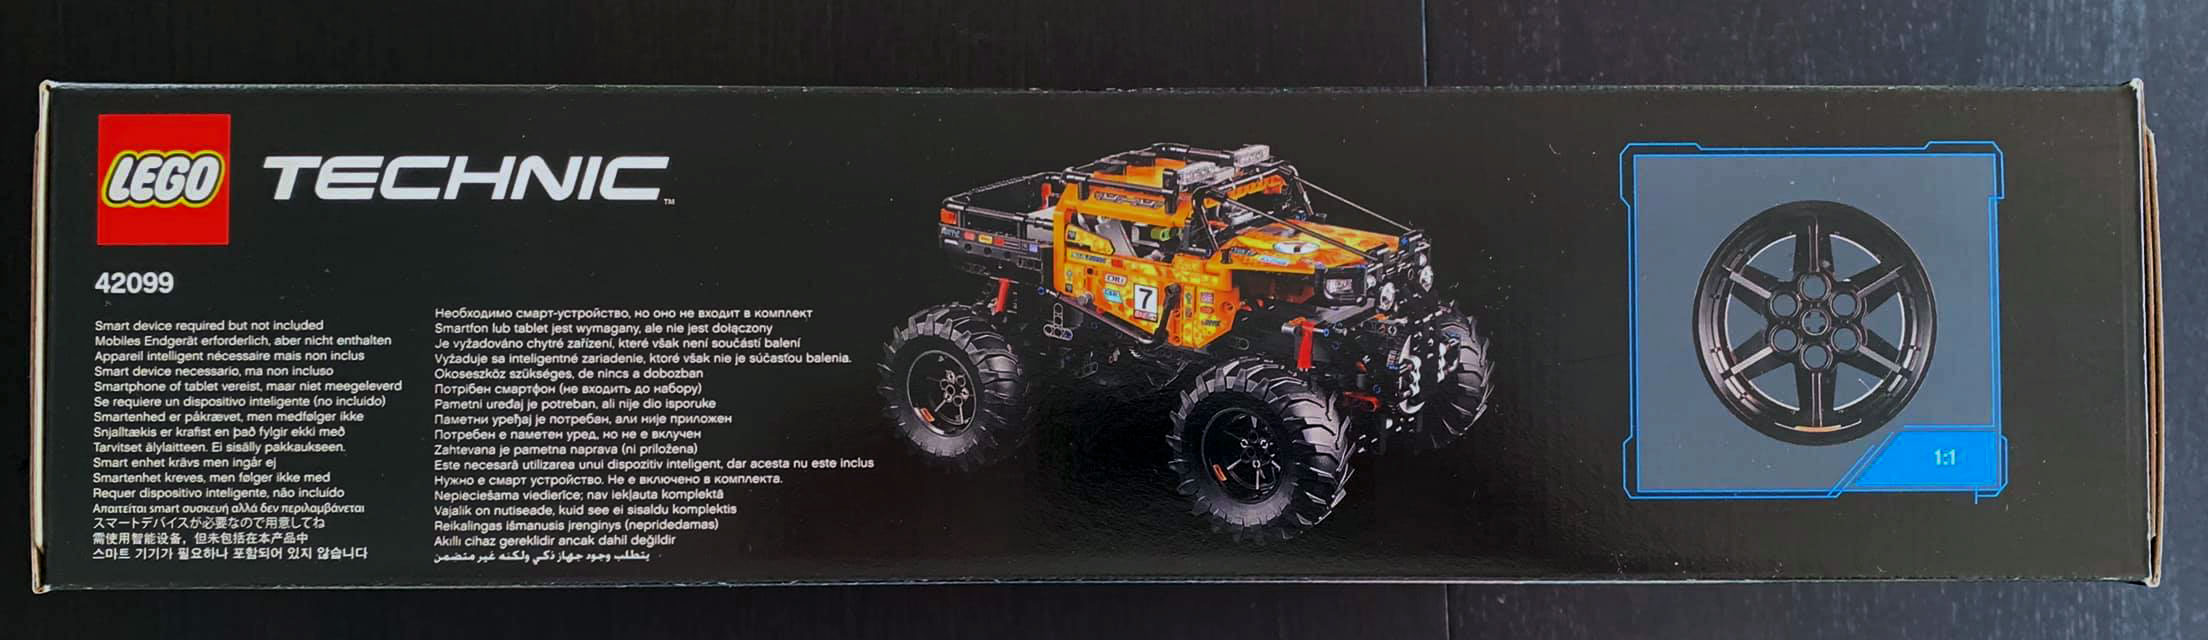 LEGO-Technic-4x4-X-Treme-Off-Roader-(42099)-brickfinder-05